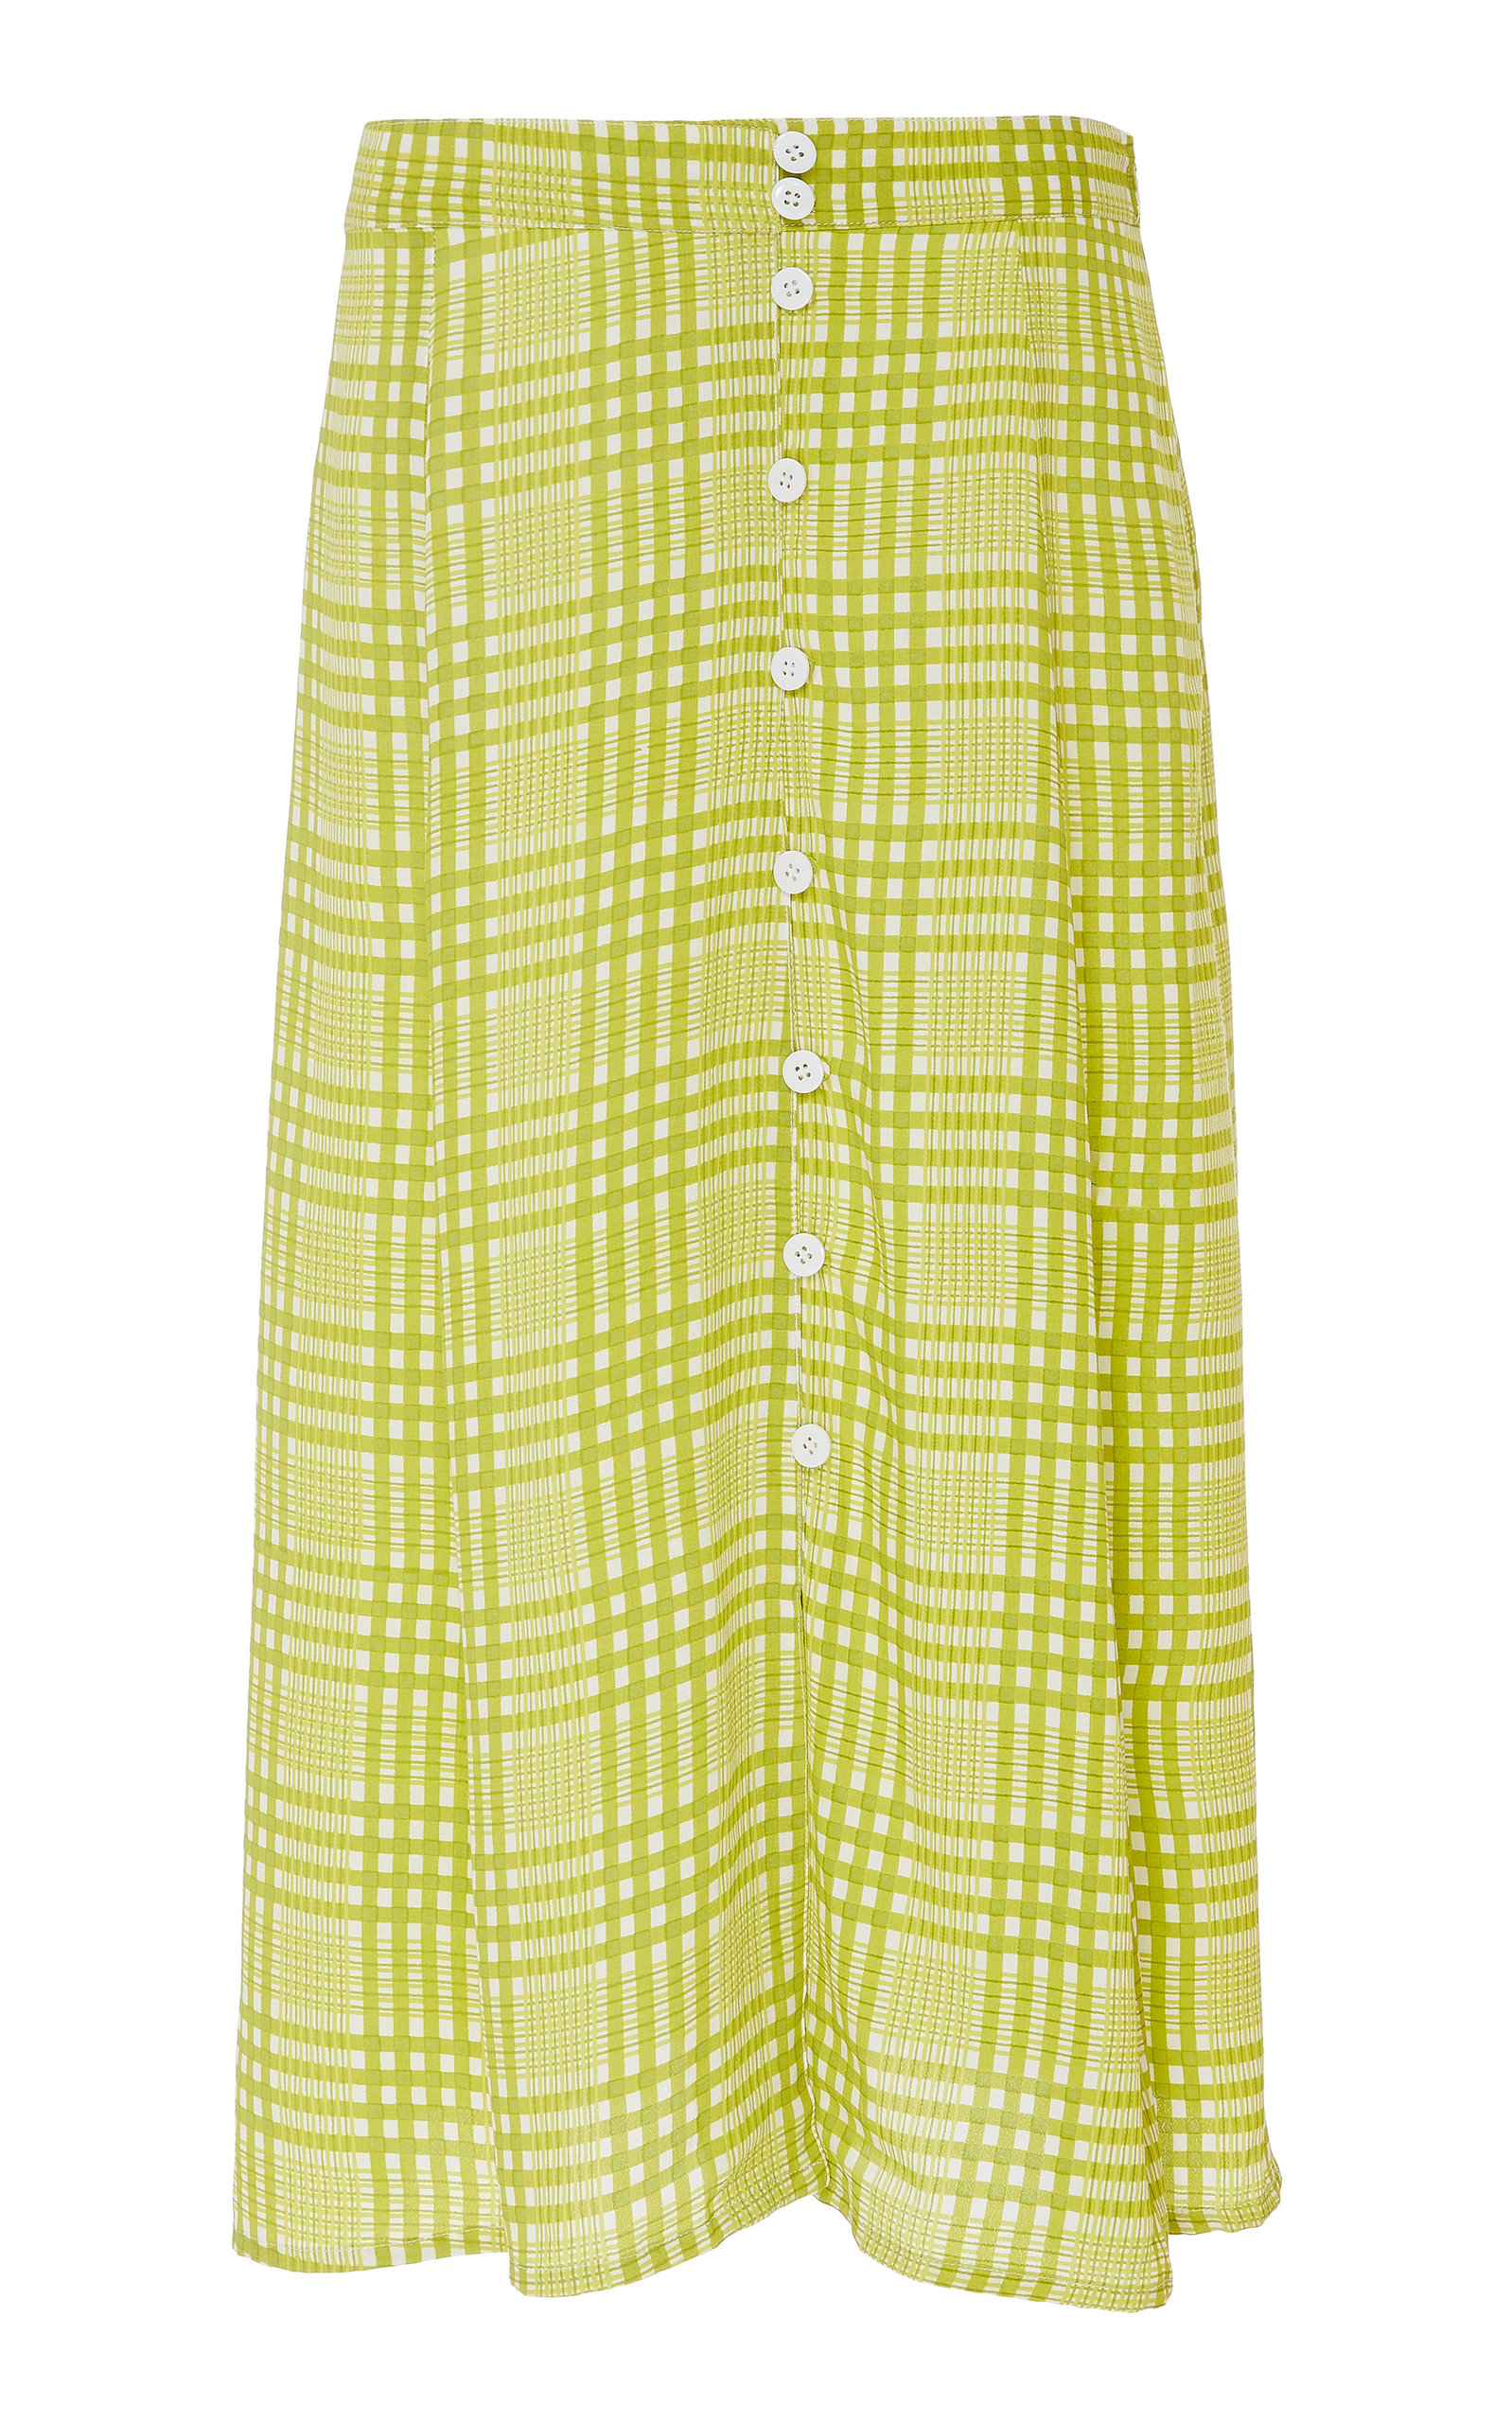 Moda Operandi | Faithfull The Brand Marin Checked Crepe Midi Skirt Size: XS | Clouty